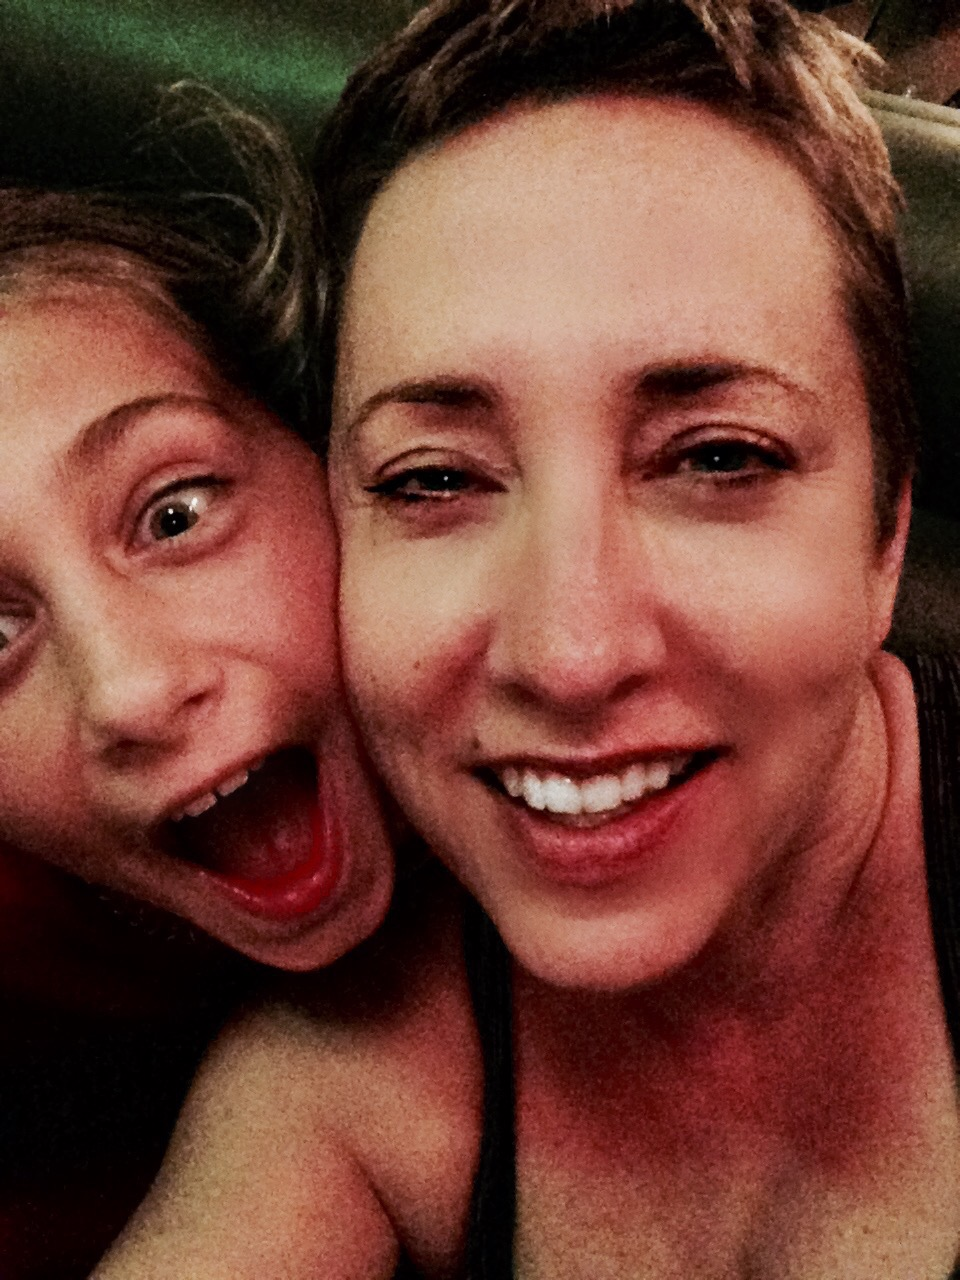 Mother/daughter selfie!